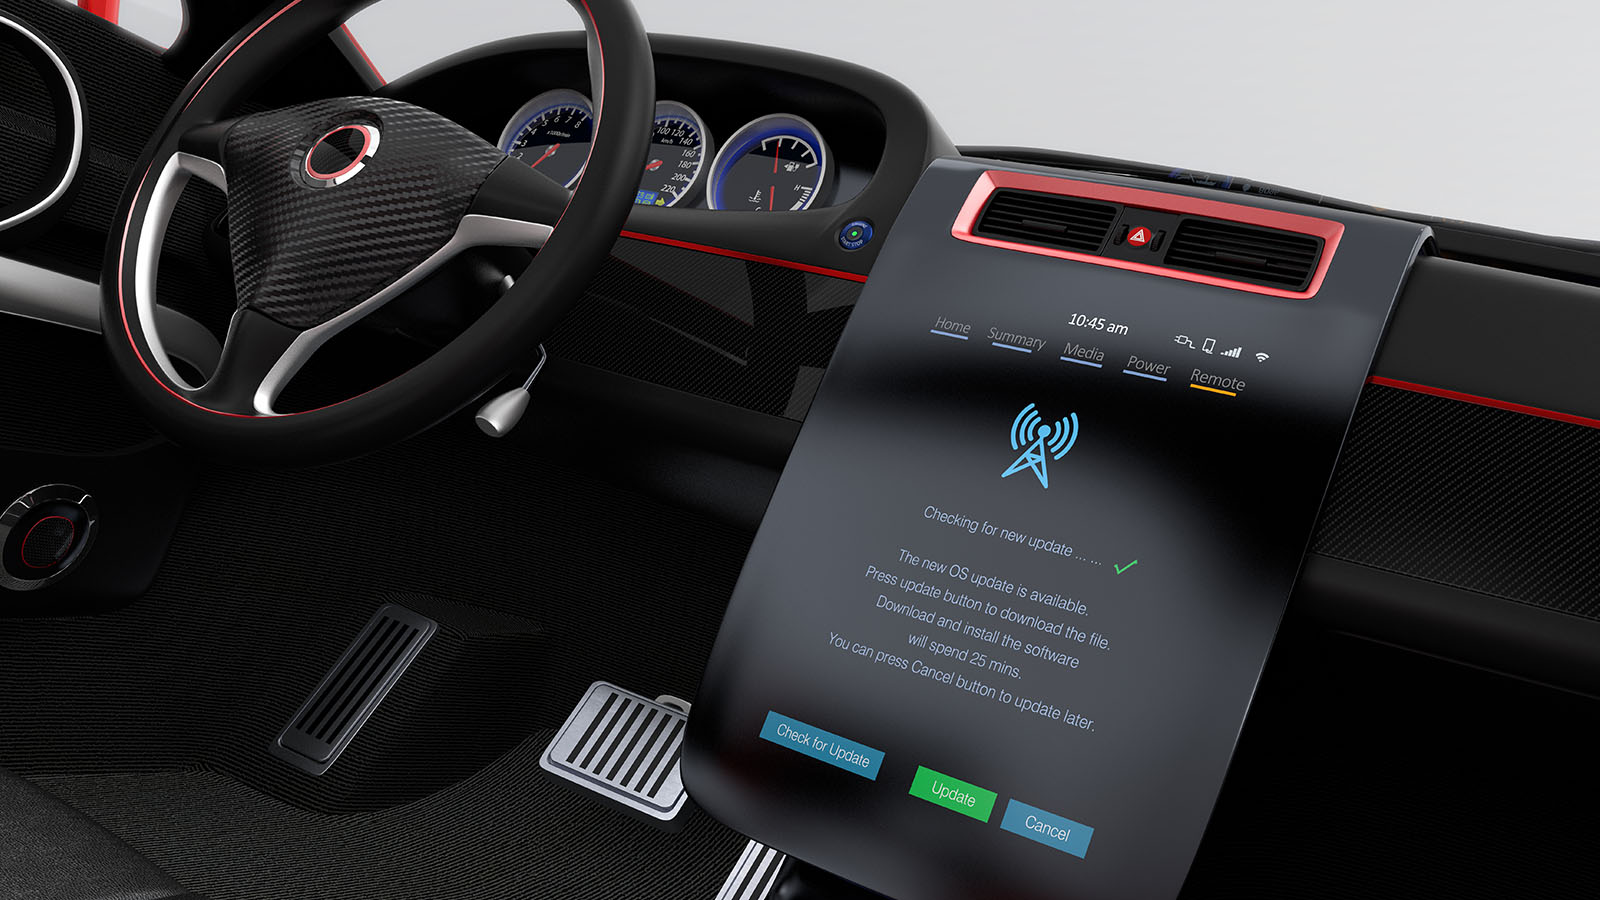 Microsoft, Connected Car Solutions, Technology Partner